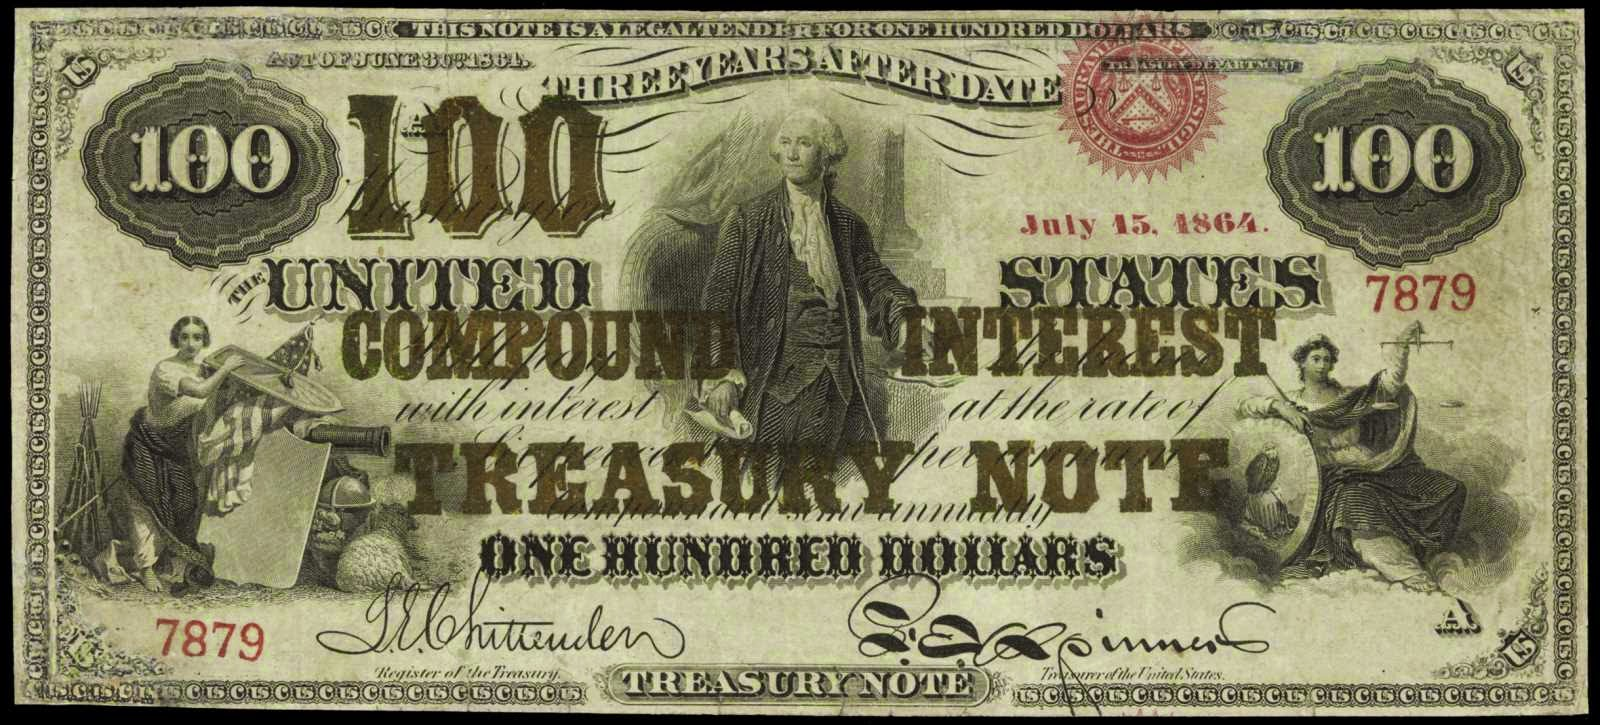 1864 100 Dollar Bill Compound Interest Bearing Note